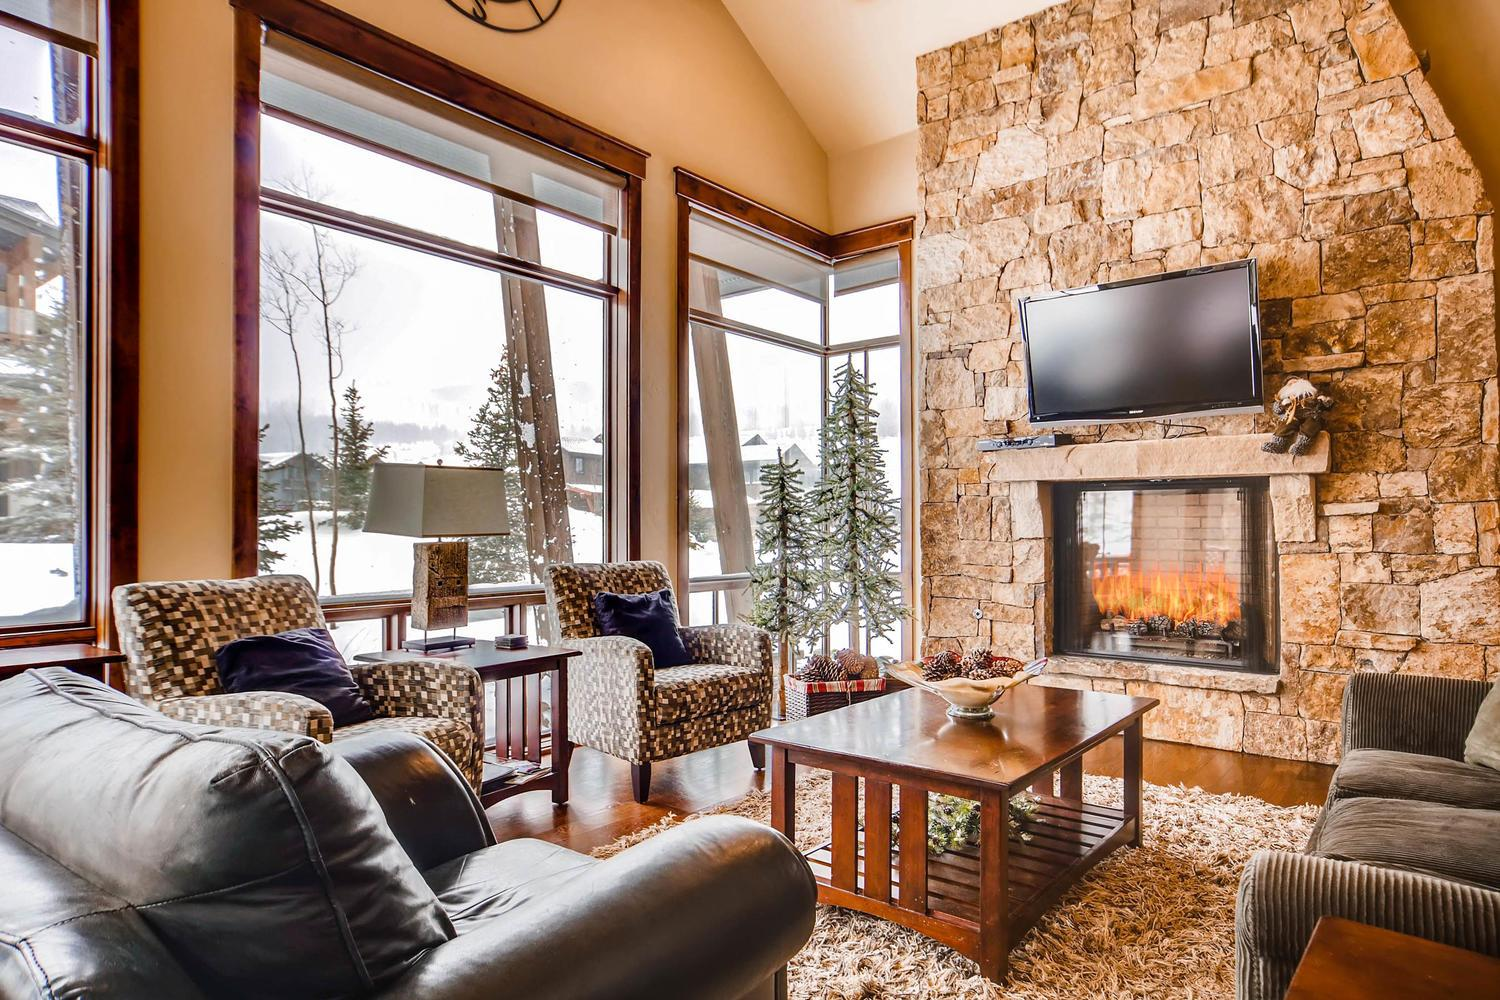 This luxury mountain home boasts high-end finishes.